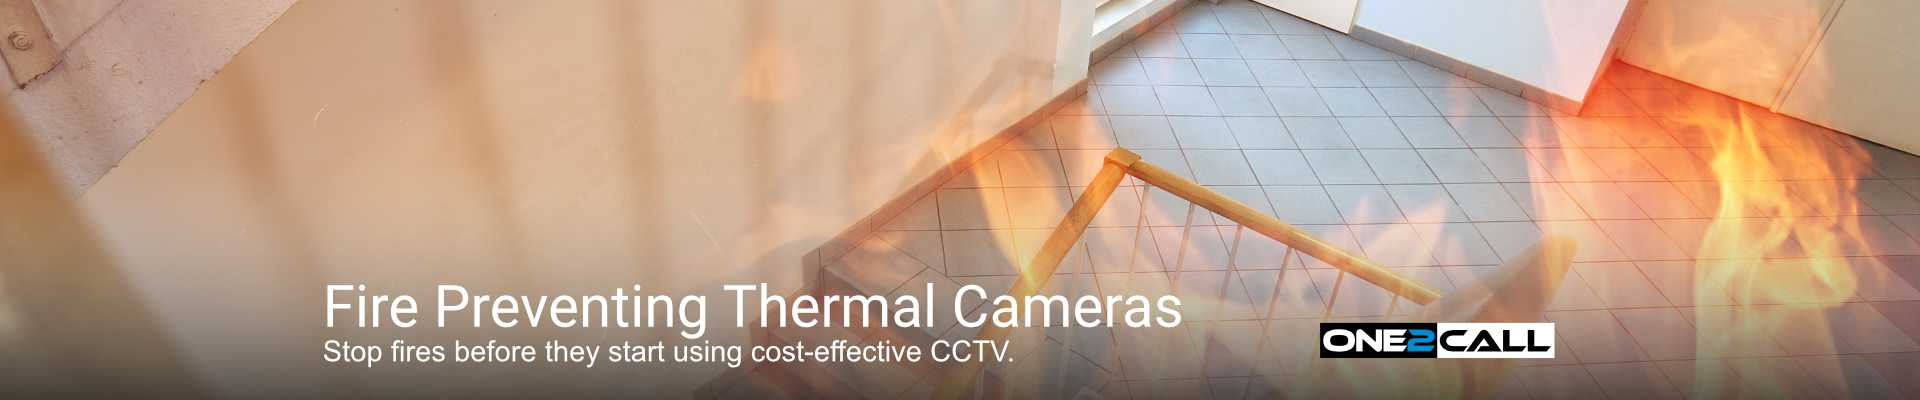 Fire Preventing Thermal Cameras - Stop fires before they start using cost-effective CCTV.